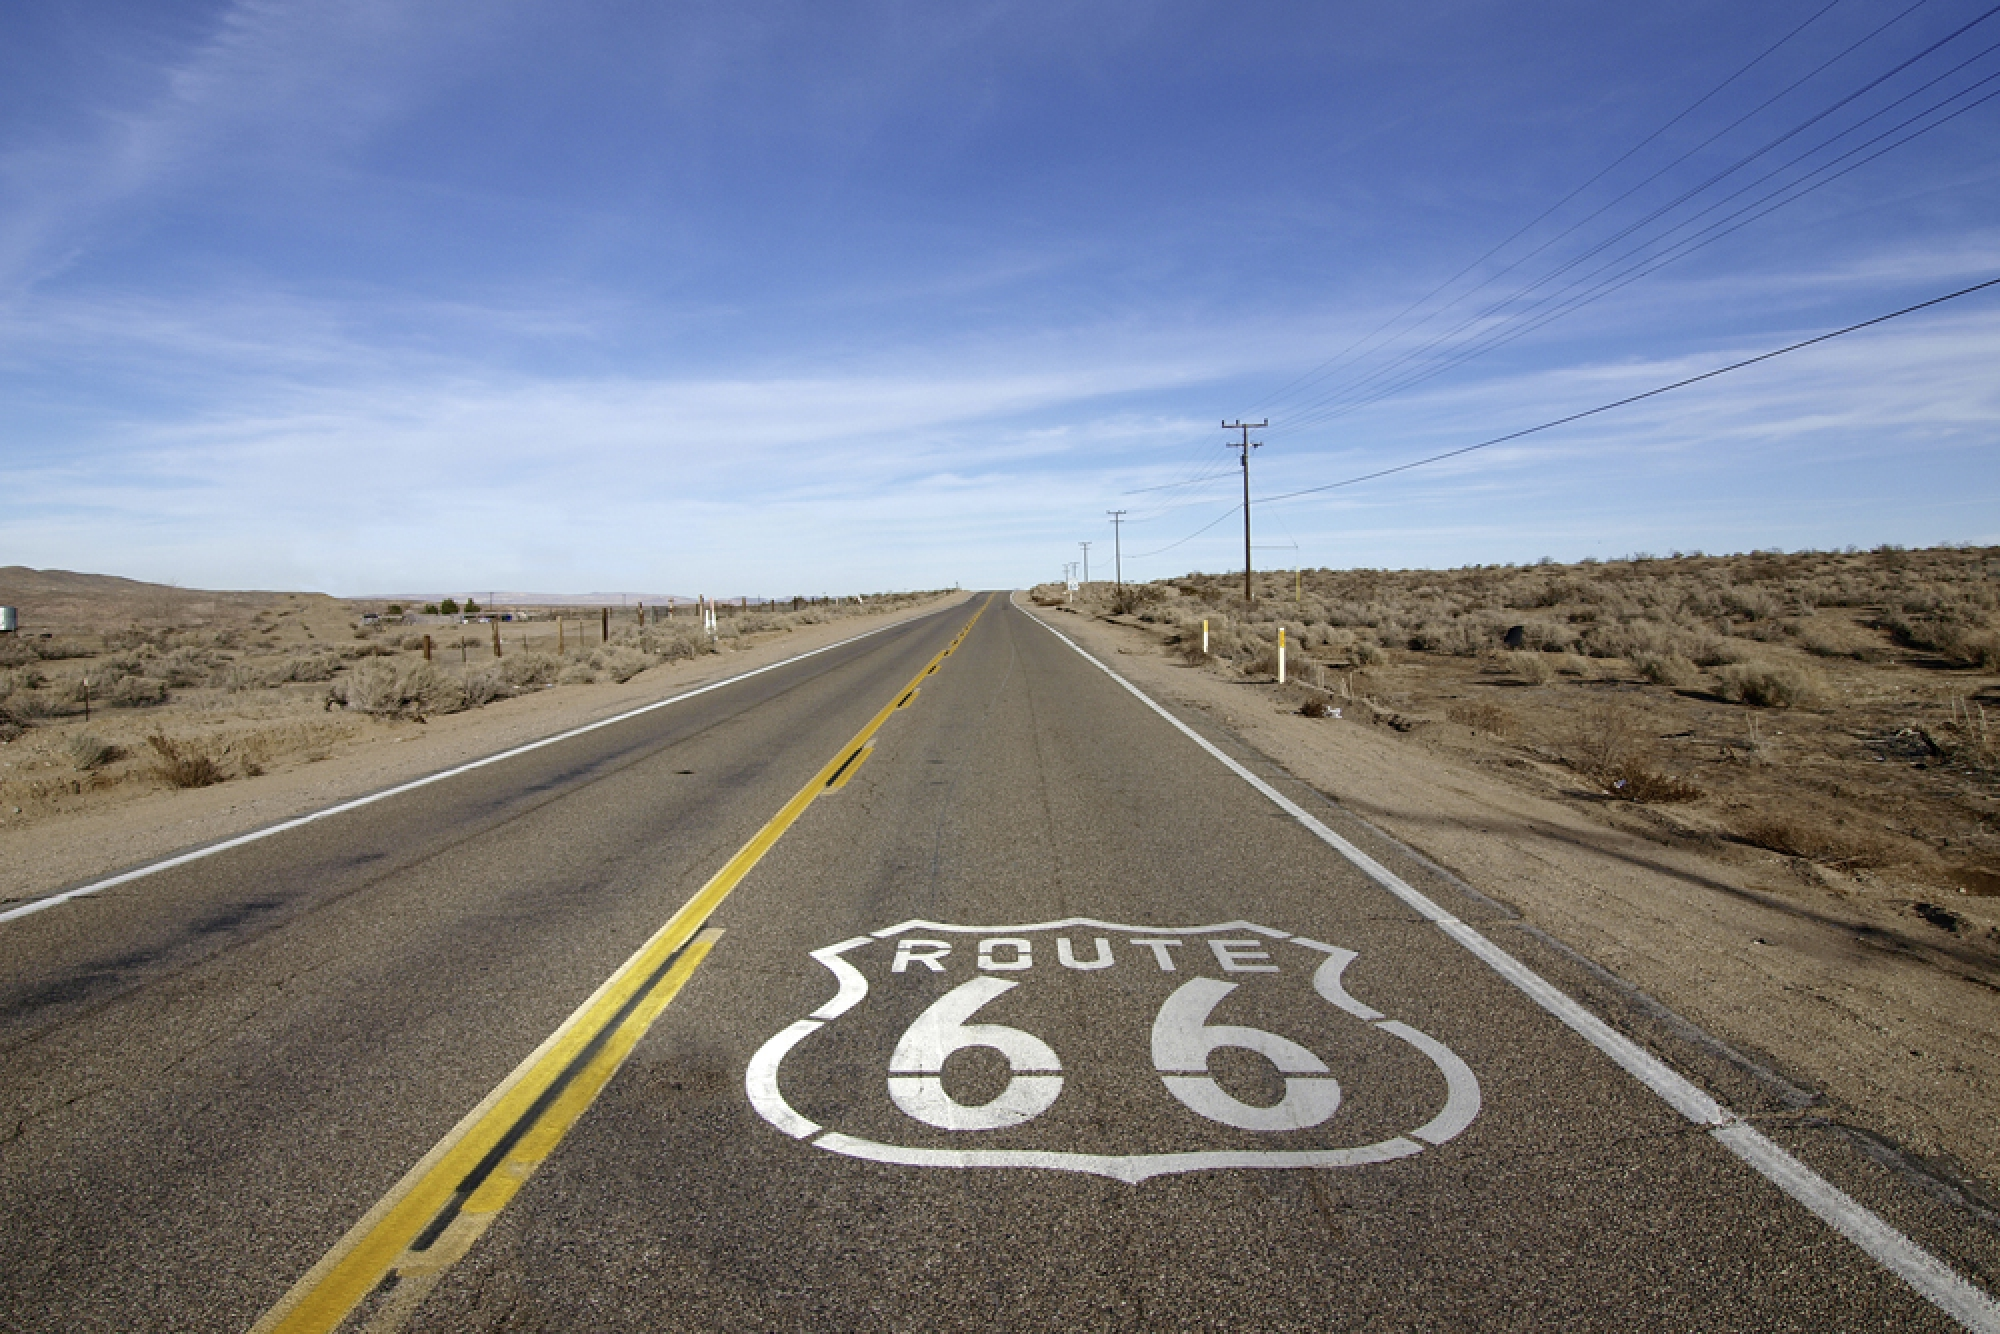 Awesome Route 66 wallpaper United States of America wallpapers 2000x1334